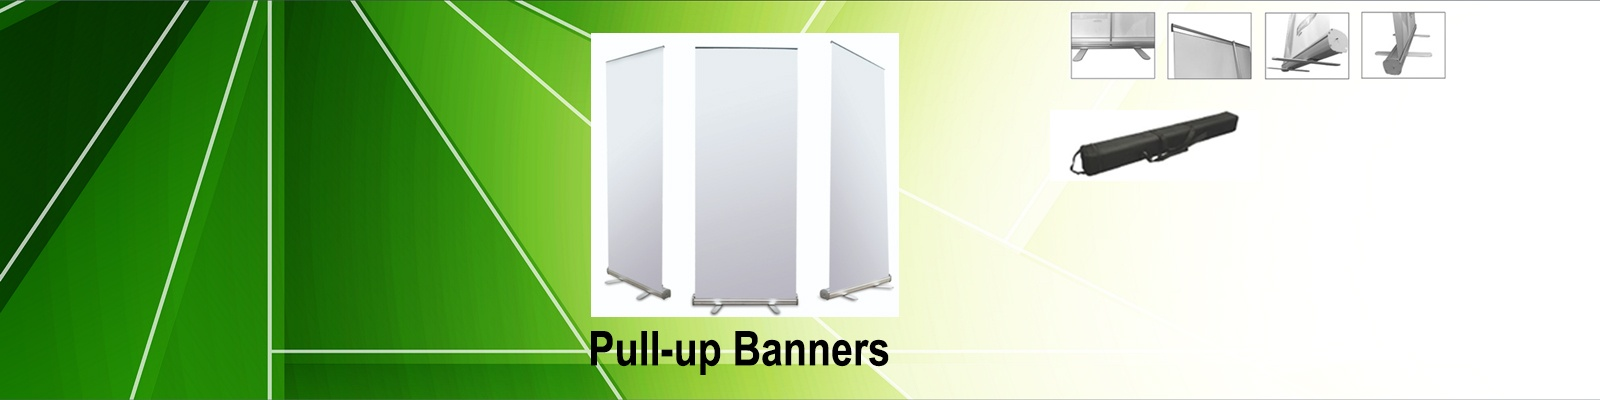 Pull-up Banners by iPlastics